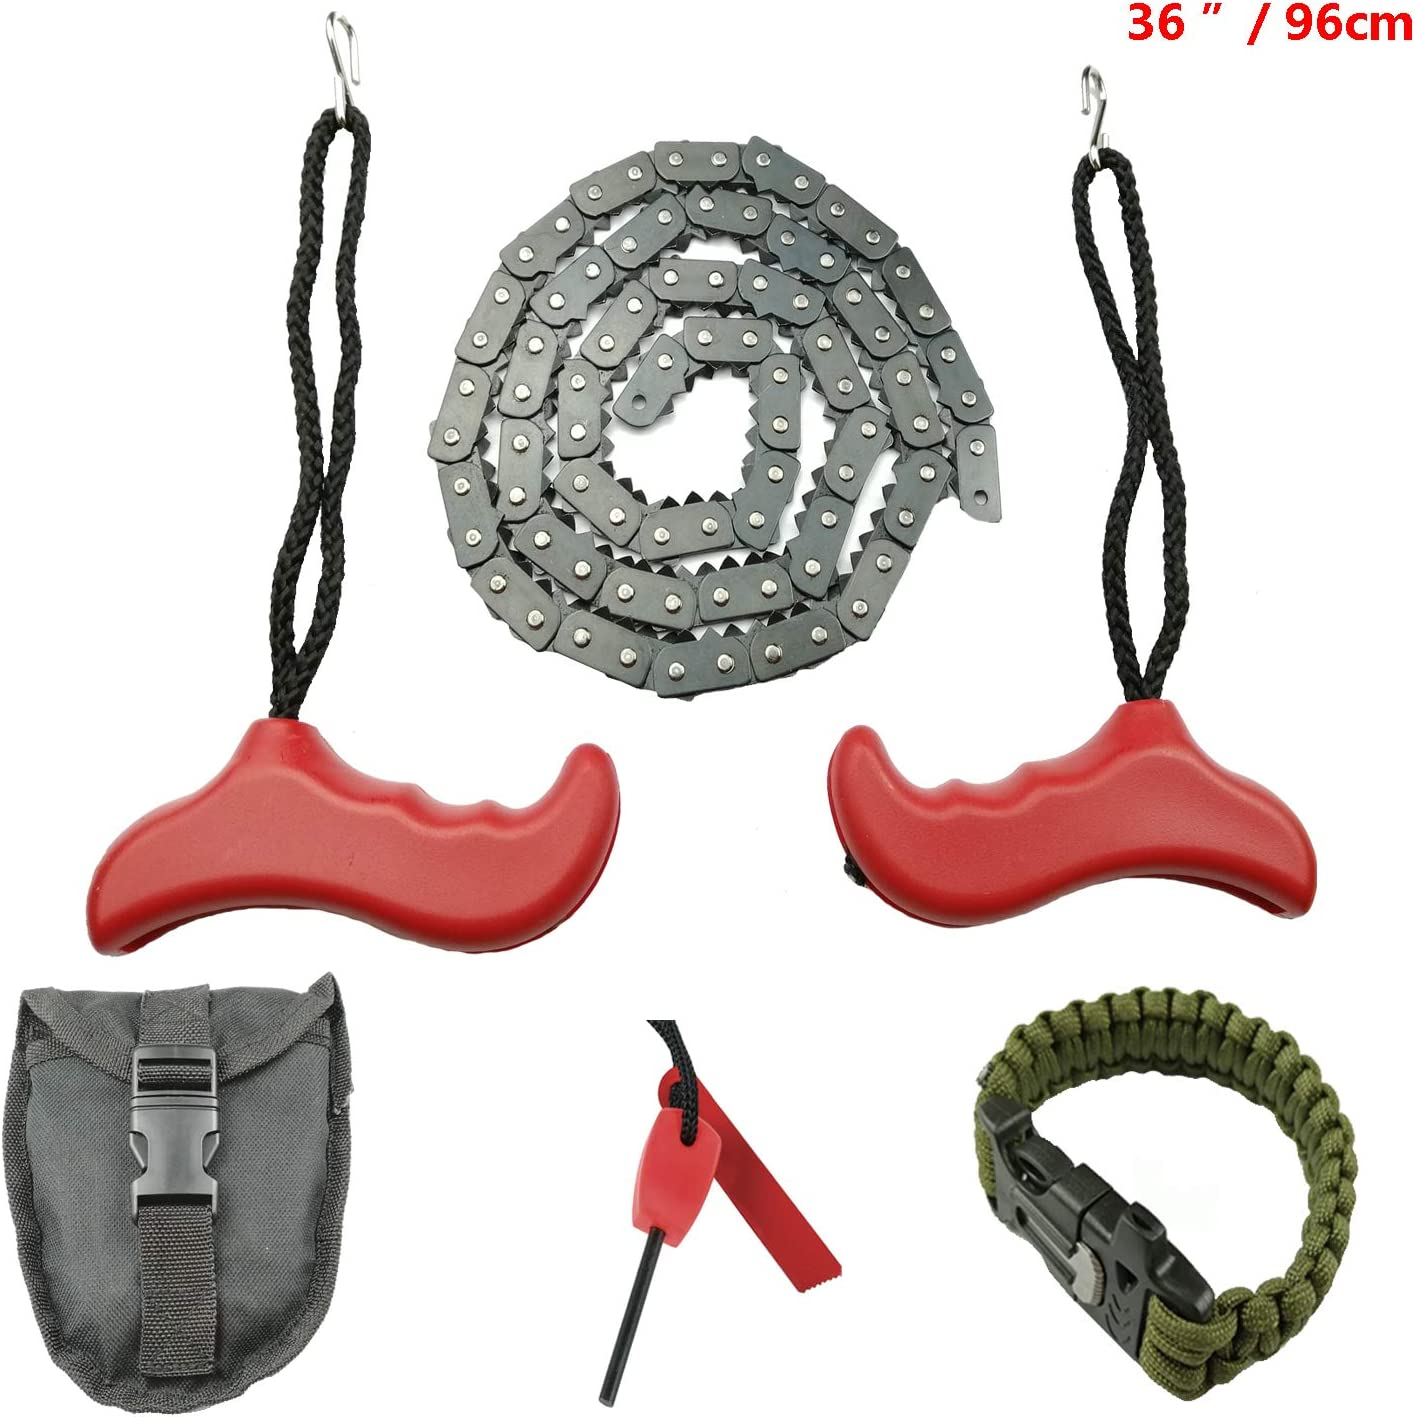 Toolshouse Hand Chain Saw,Pocket Chainsaw with Survival Bracelet.Portable Folding Hand Saw,Fast Tree Cutting for Camping,Hiking Gardening and Outdoor Emergency Hunting